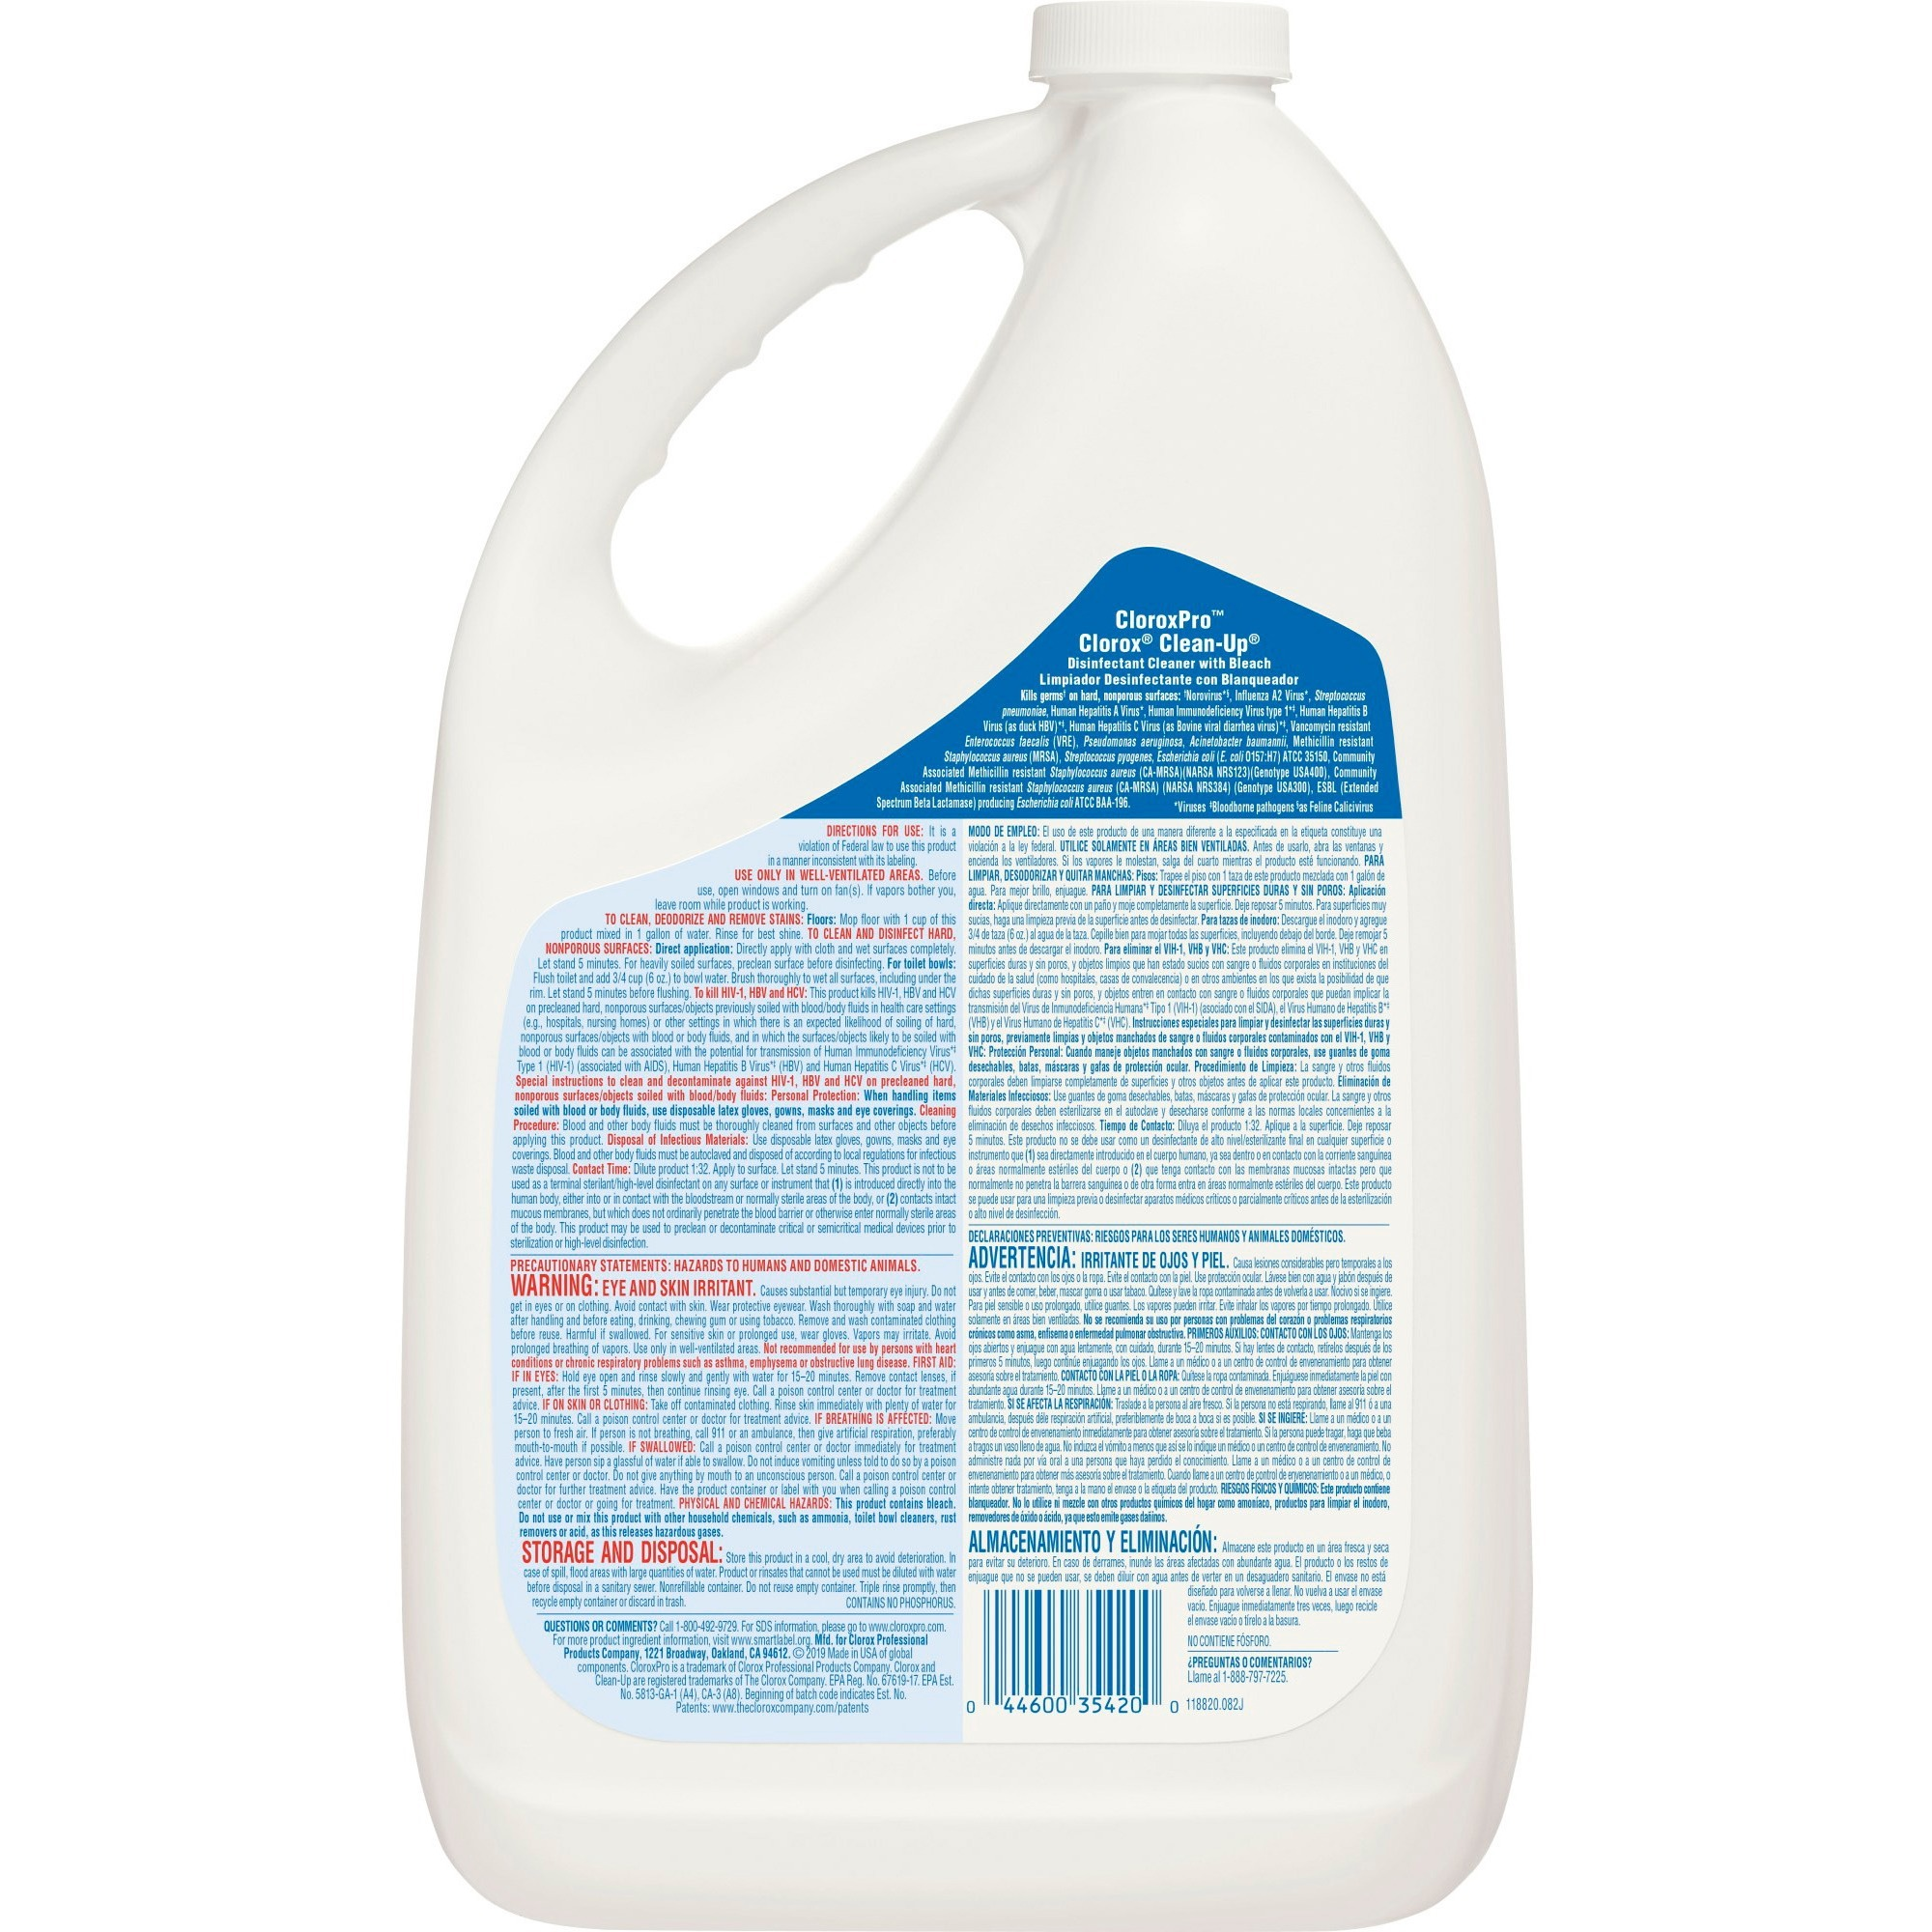 Clorox Clean-Up Disinfectant Cleaner with Bleach - Liquid - 1gal - Fresh Scent - 1 Each - Refill